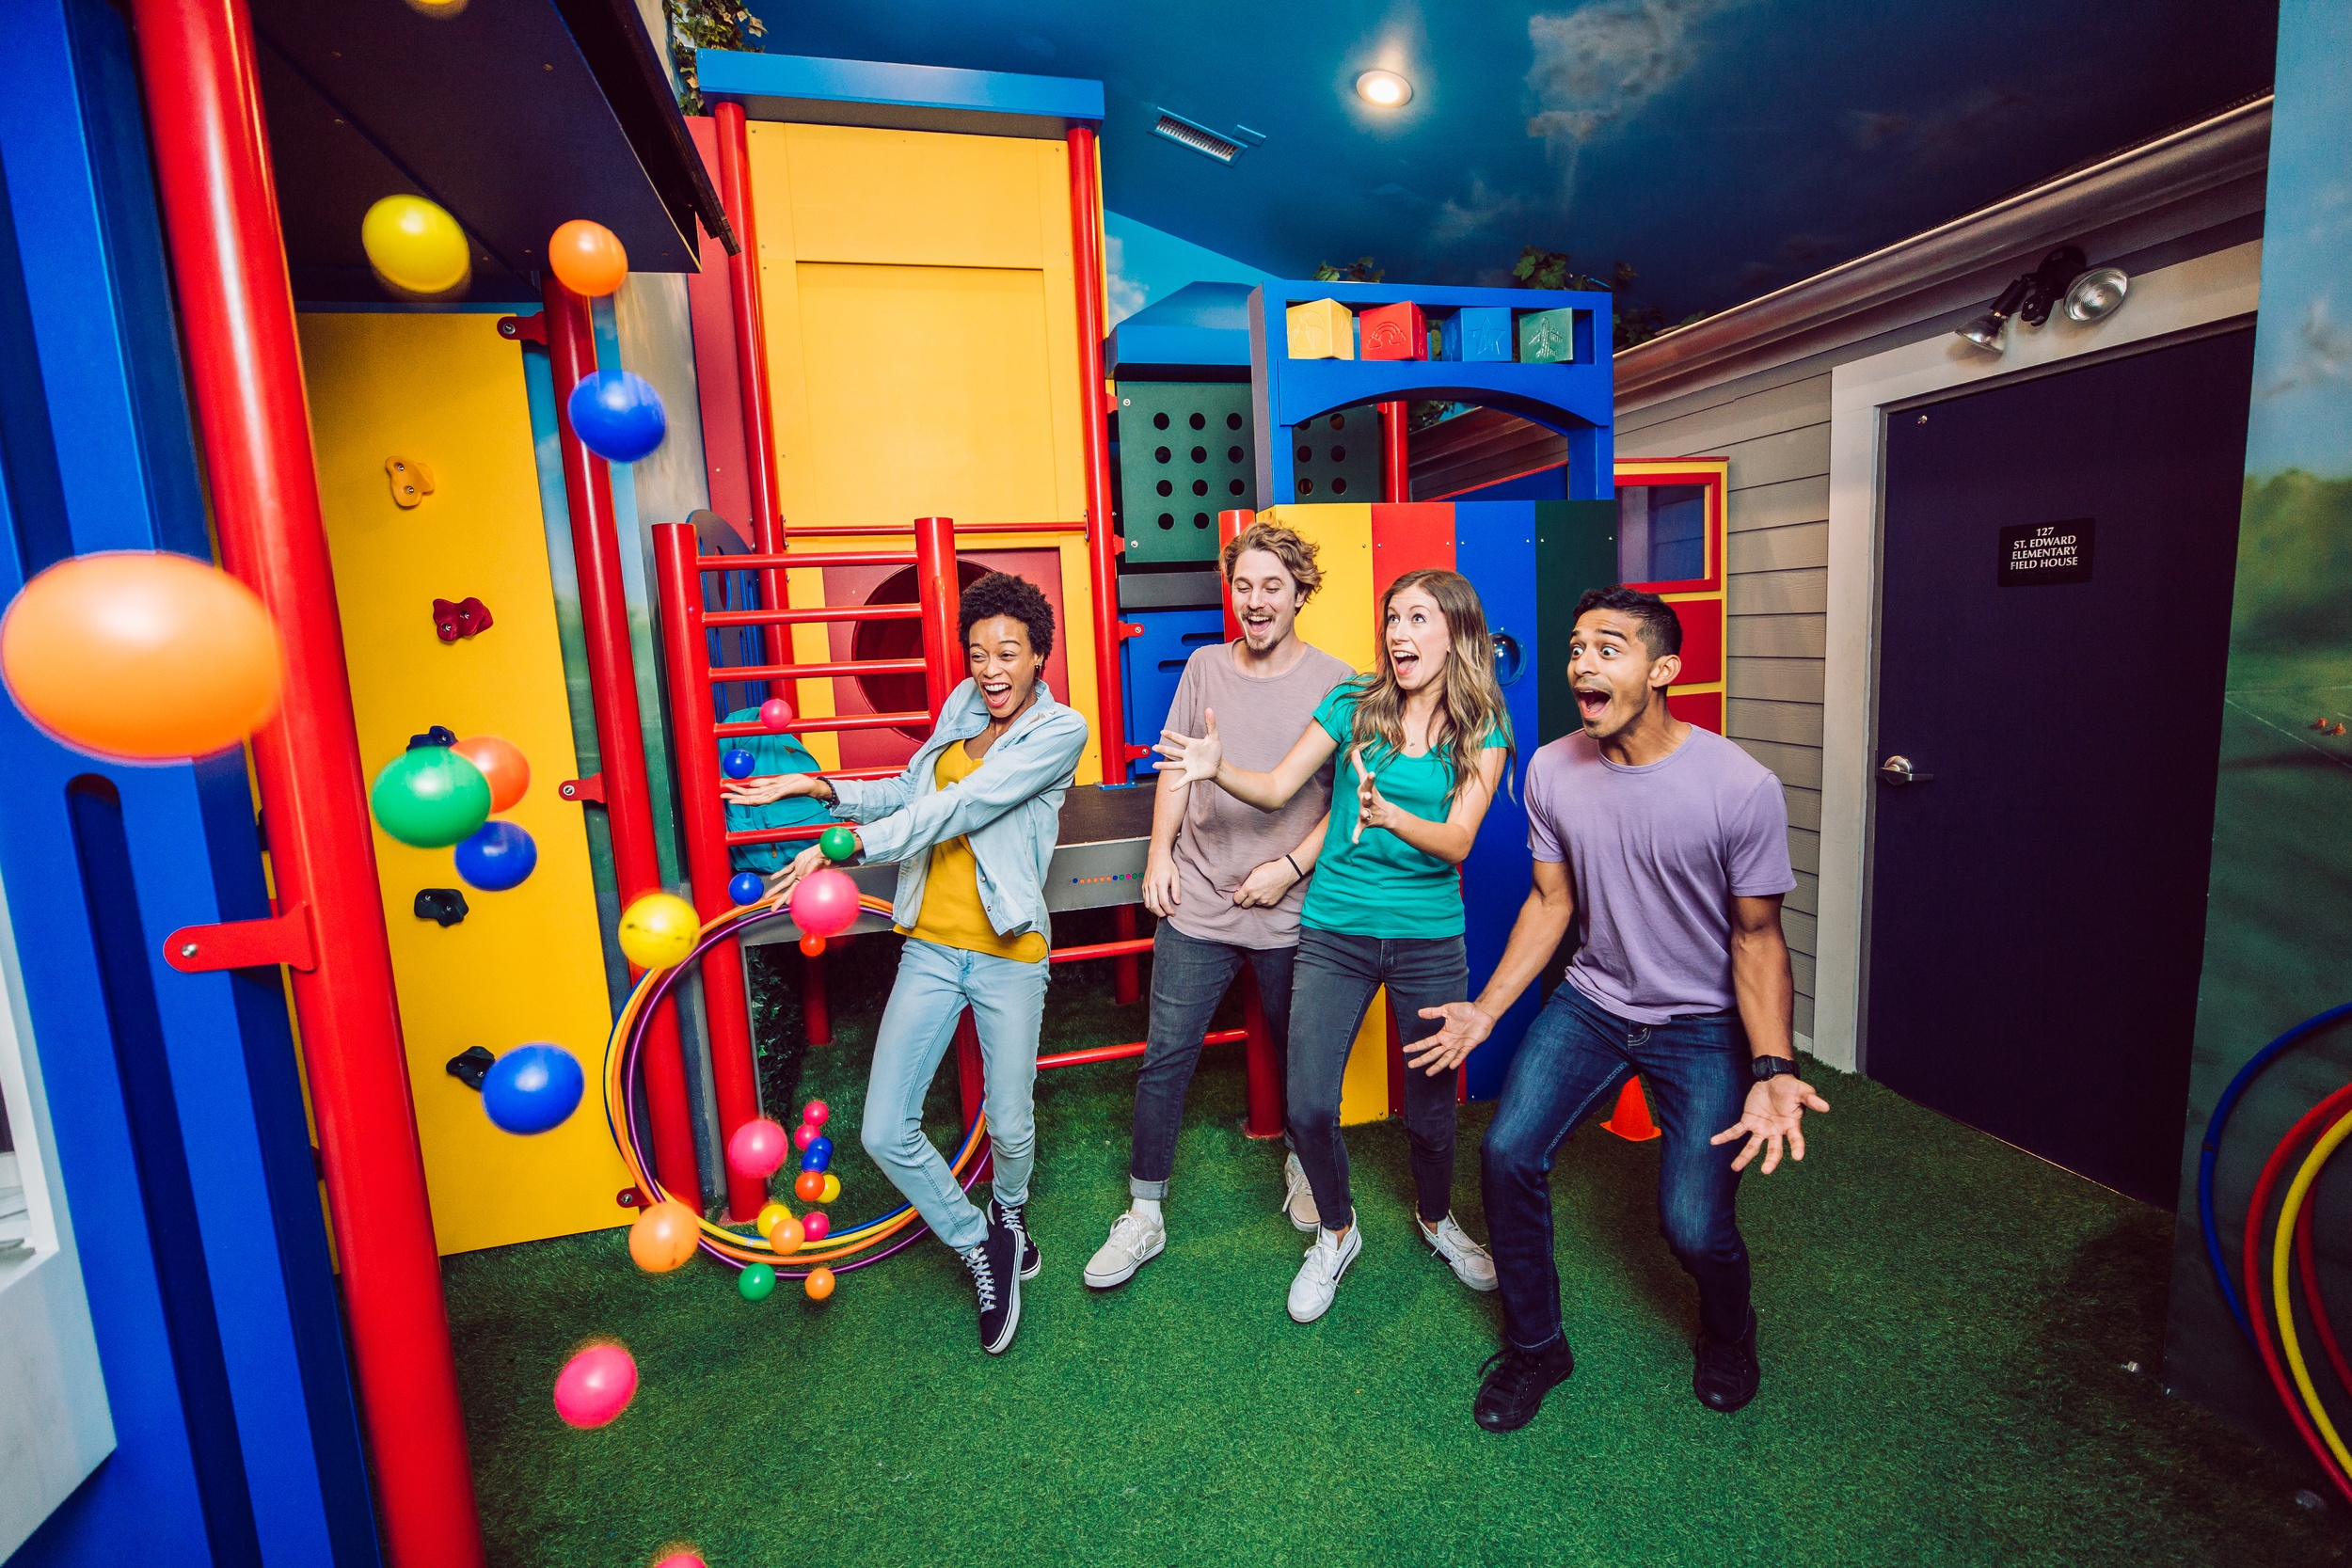 Playground-themed escape room by The Escape Game